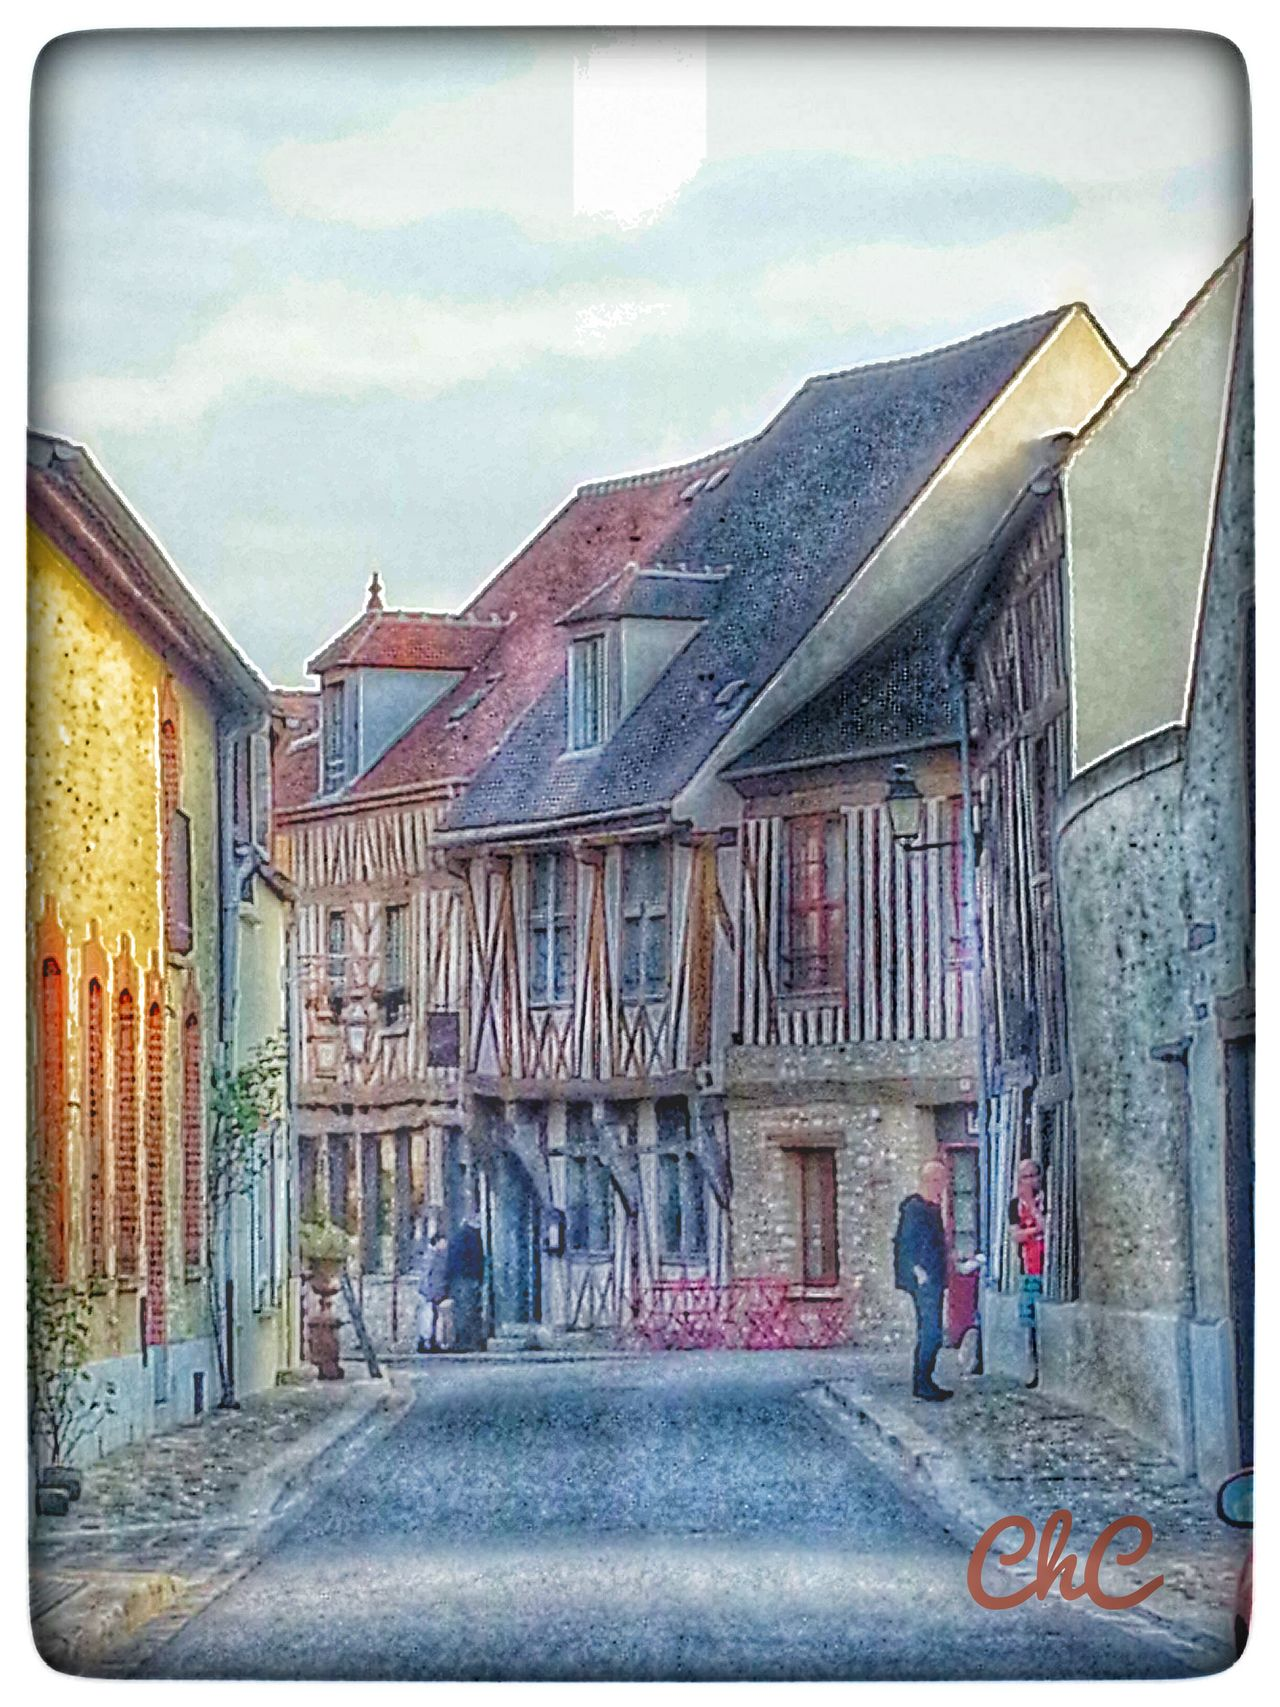 Old Shop Old House Hdr_Collection Myfavoriteplace Vieille Maison Old Town Taking Photos à Provins en France 🏡 🏠 🏡